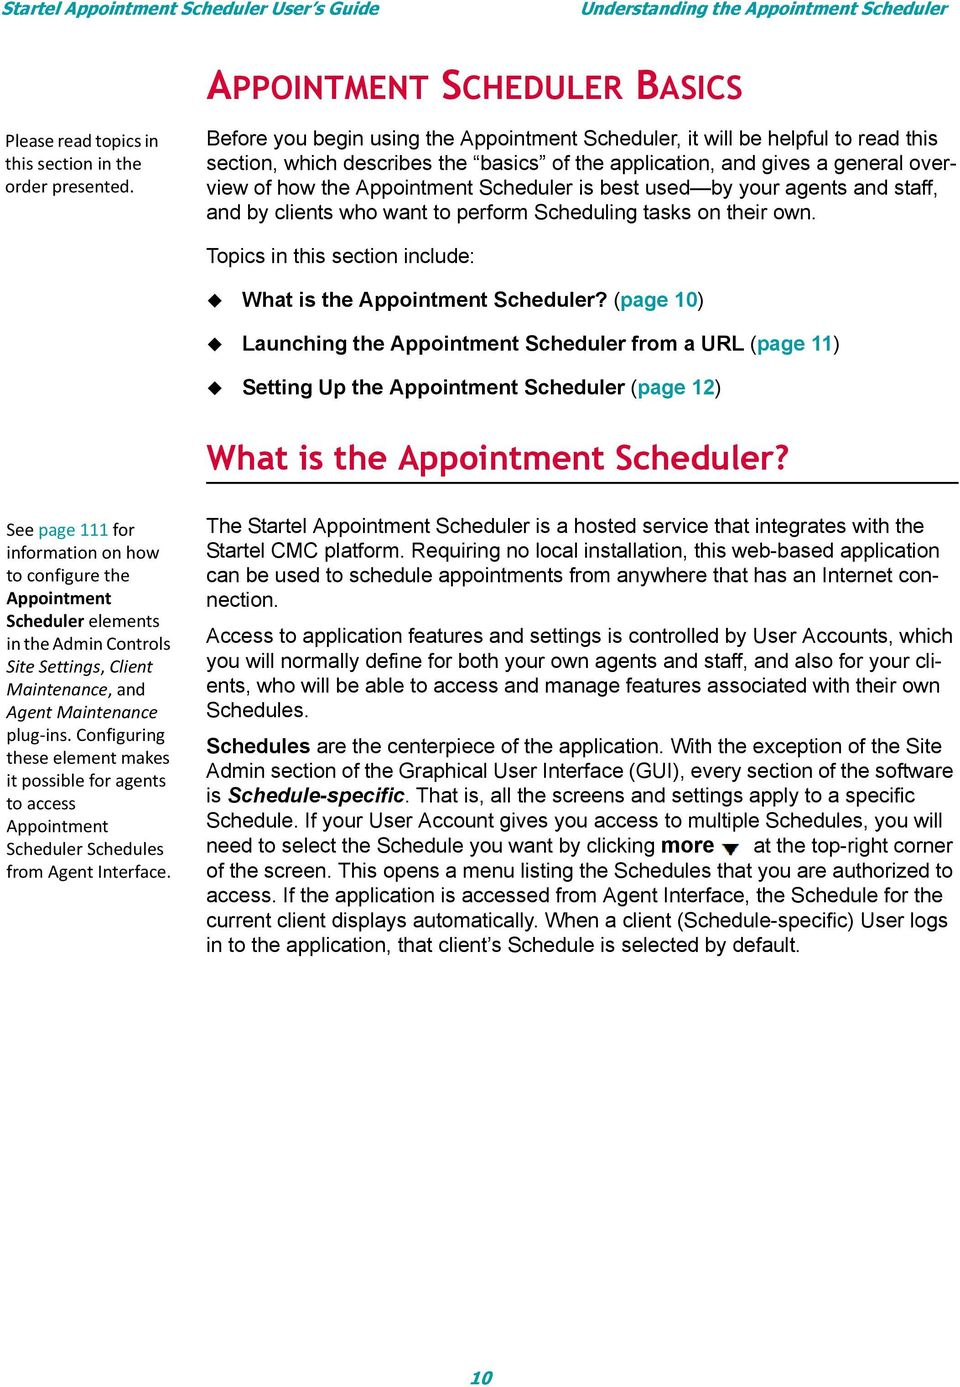 is best used by your agents and staff, and by clients who want to perform Scheduling tasks on their own. Topics in this section include: What is the Appointment Scheduler?